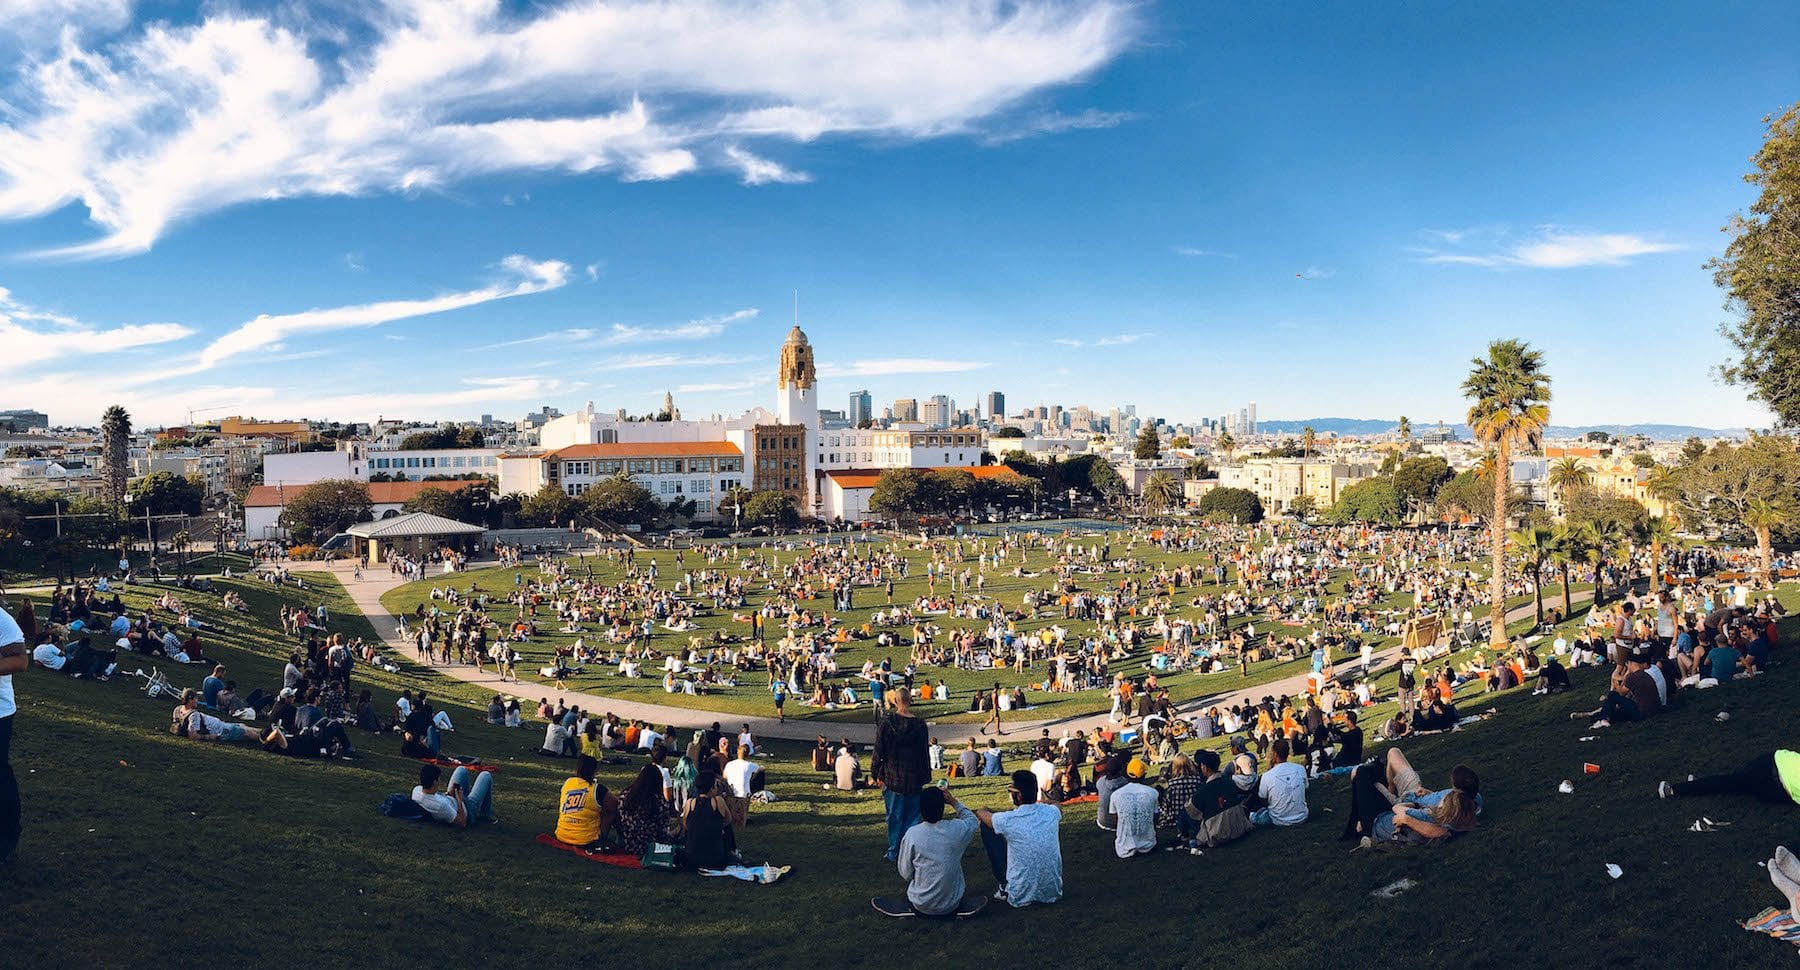 dolores-park-steam-pipe-trunk-distribution-venue-copy